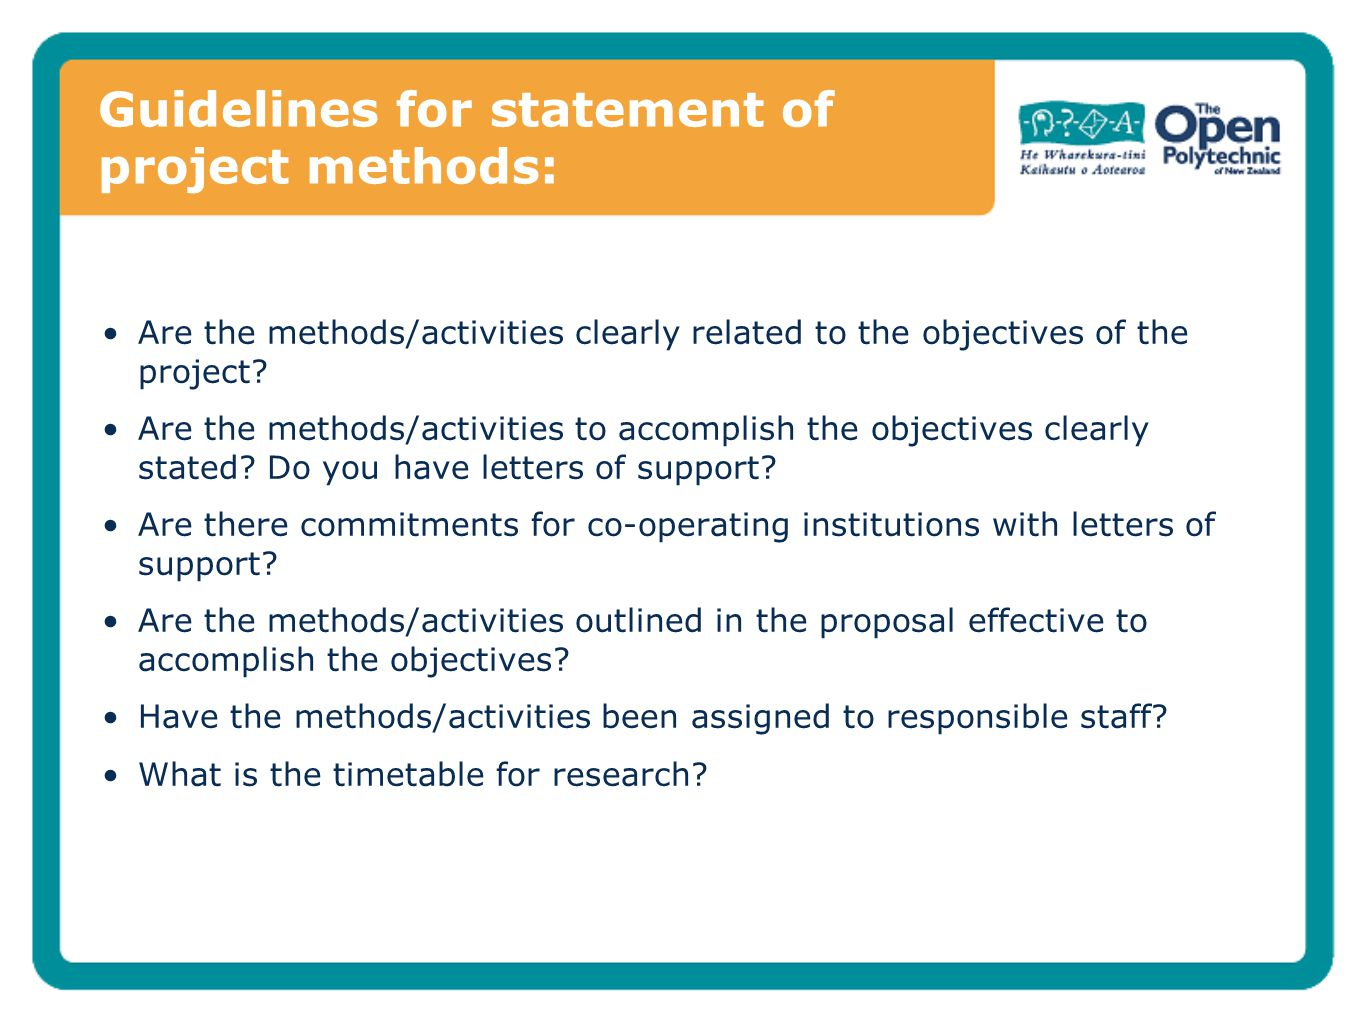 Guidelines for statement of project methods: Are the methods/activities clearly related to the objectives of the project? Are the methods/activities t